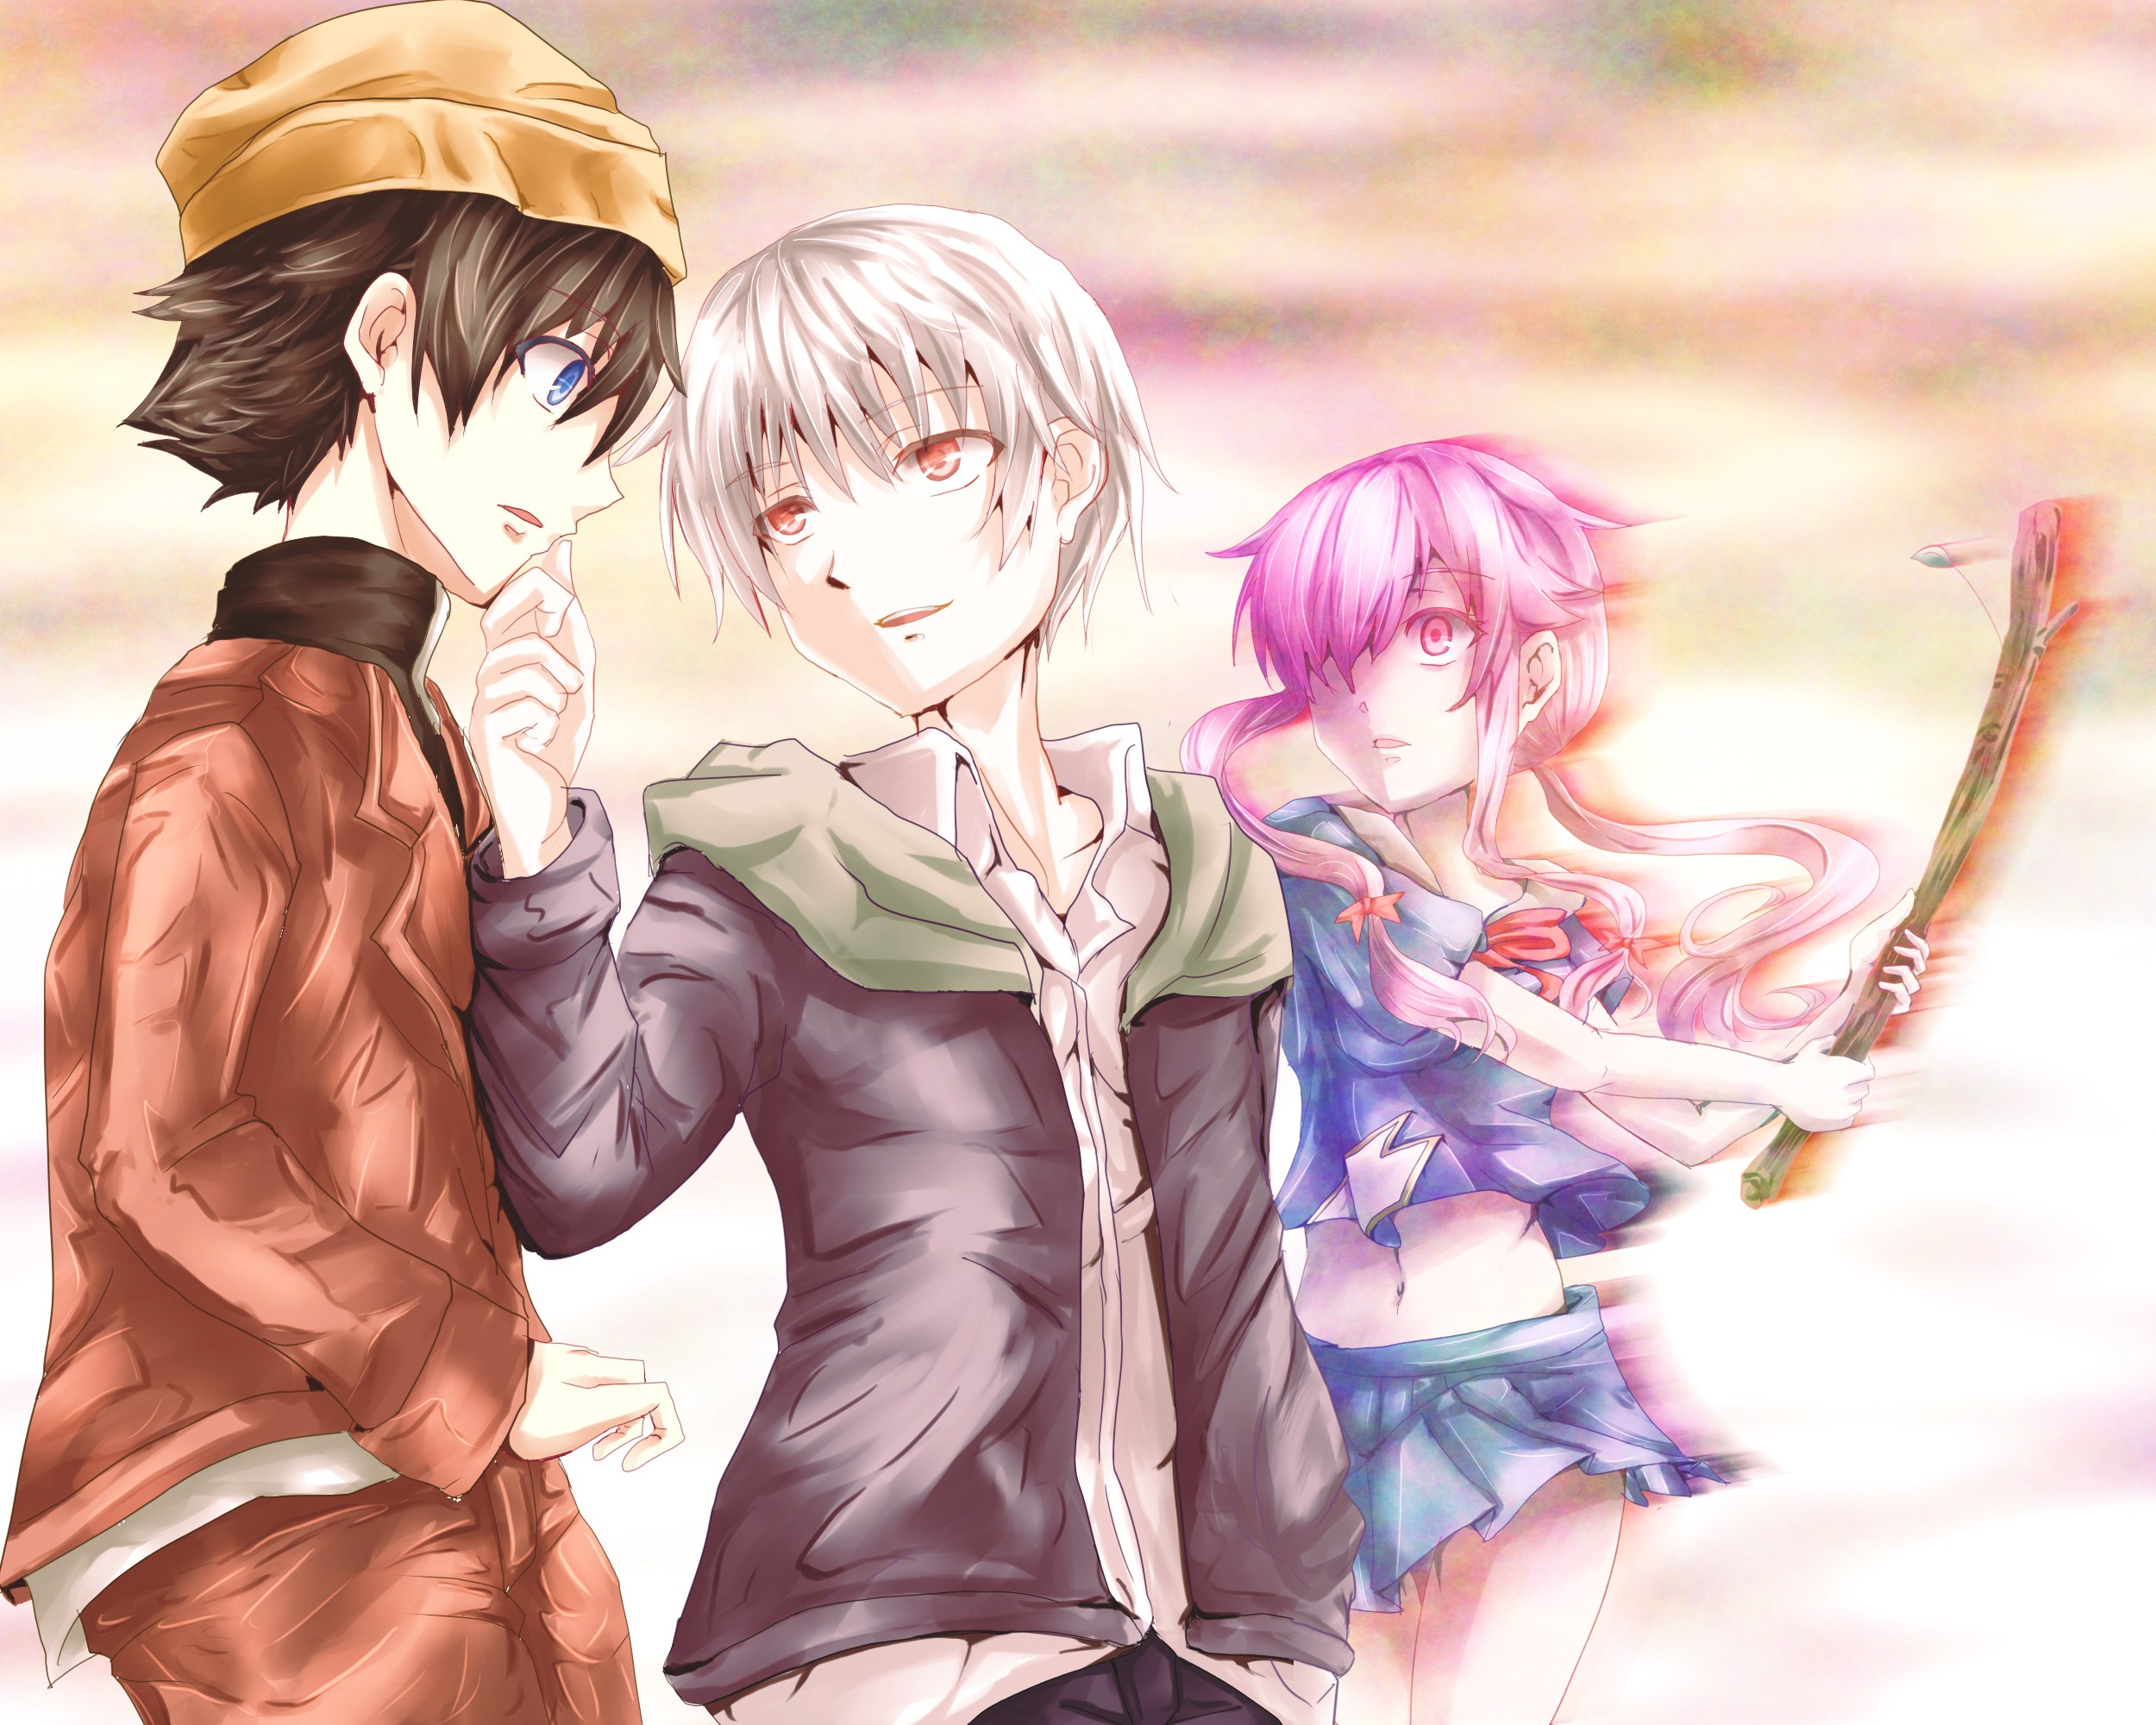 Future Diary Wallpaper: Mirai Nikki Full HD Wallpaper And Background Image